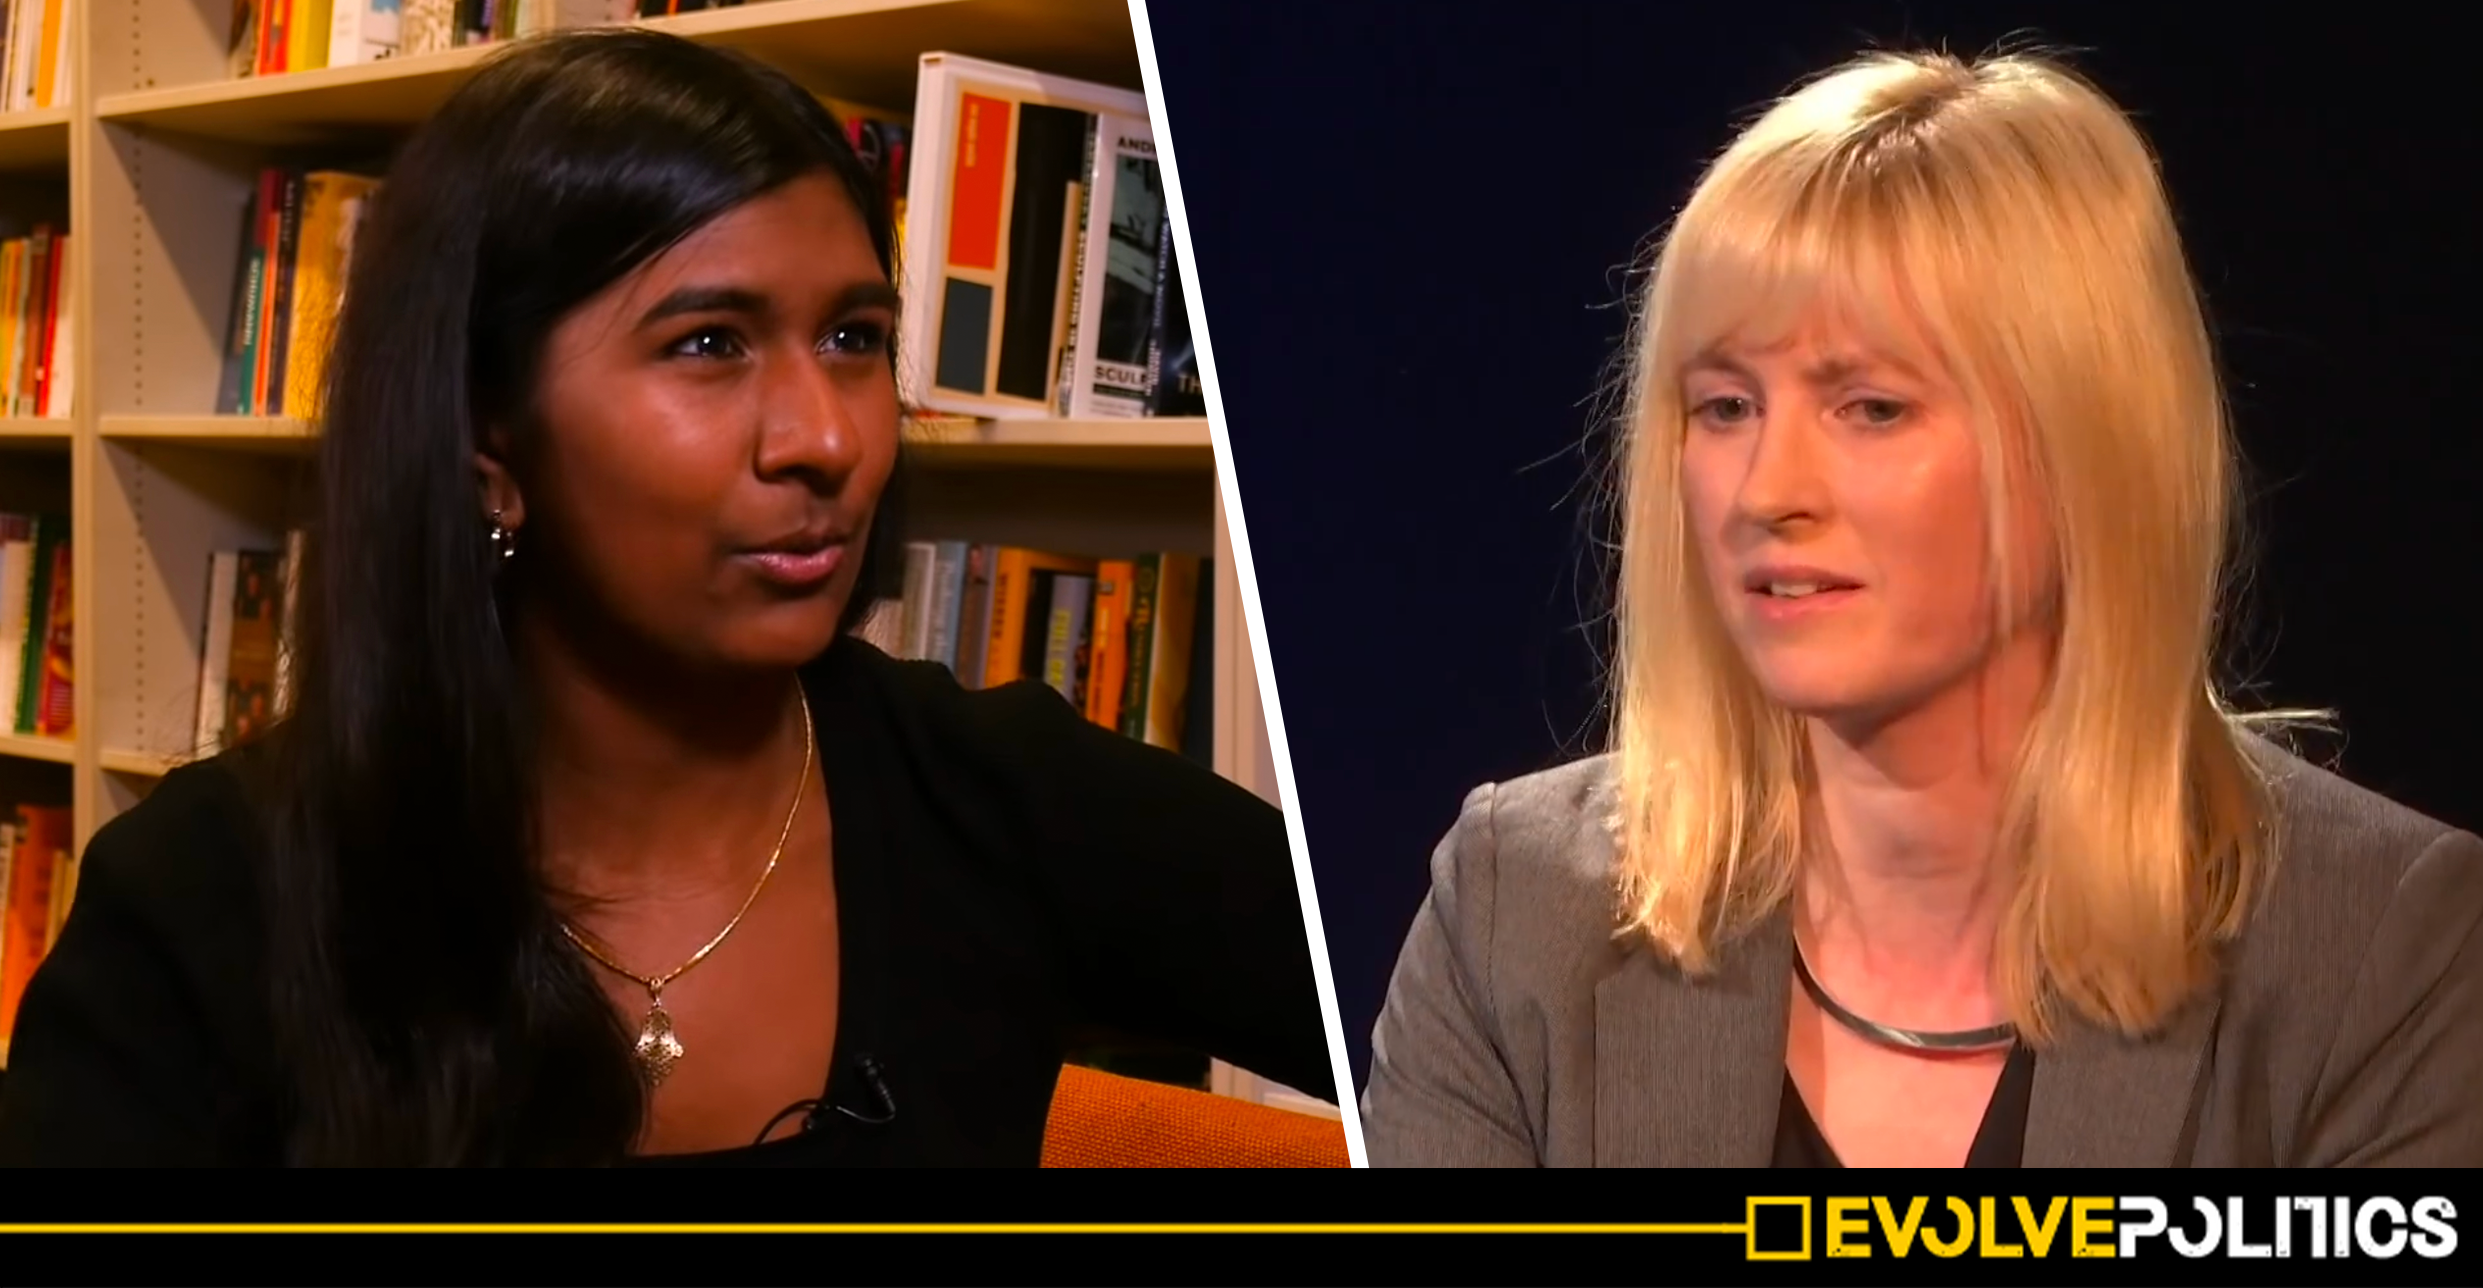 Labour MP Rosie Duffield says she could refuse to condemn racist abuse towards BAME activist for disagreeing with her policies